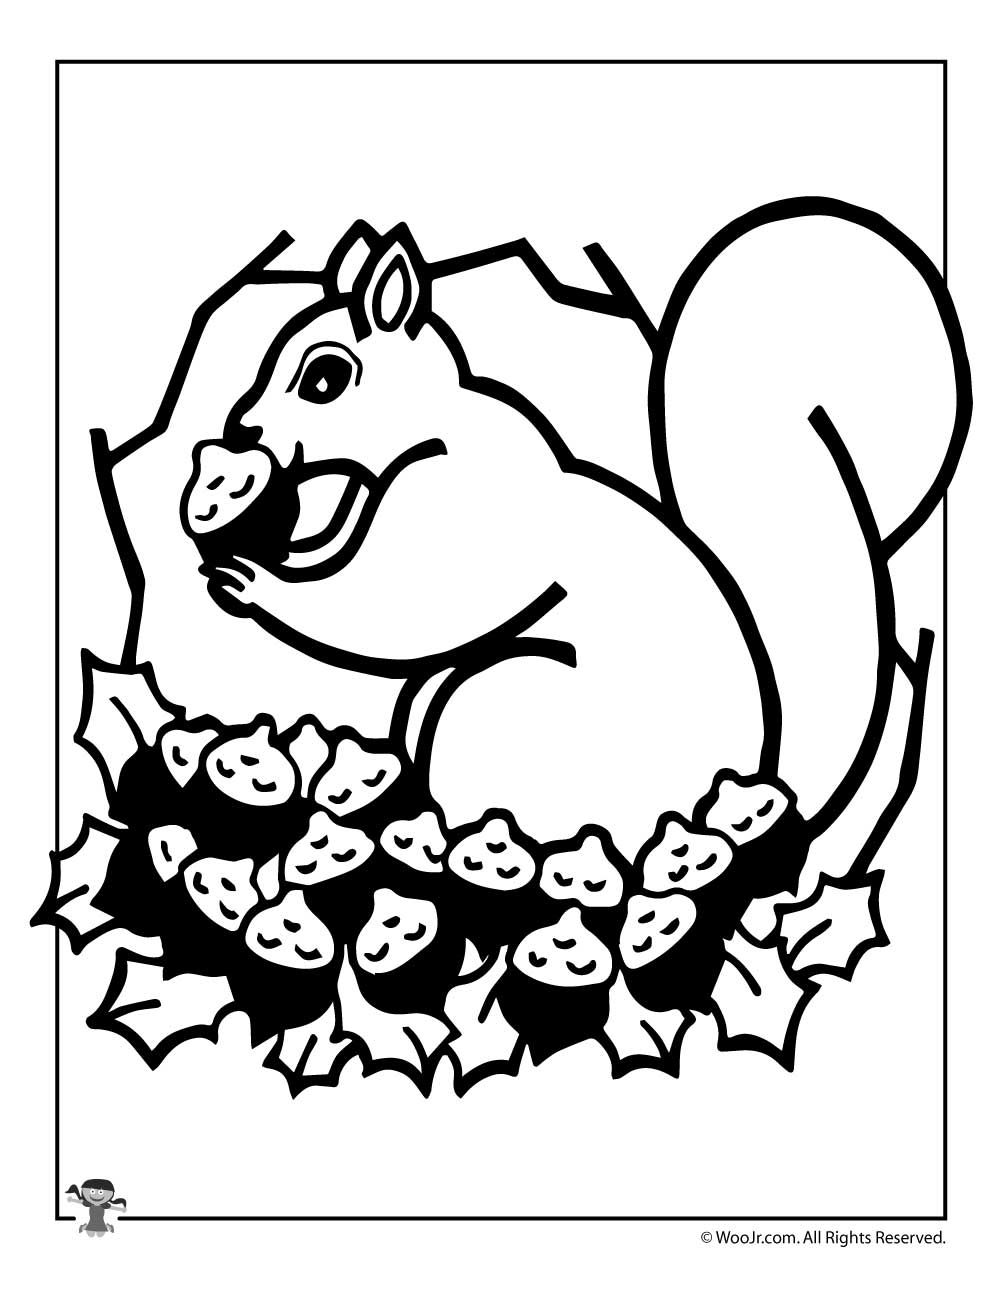 Printable Thanksgiving Activity Pages and Coloring Pages